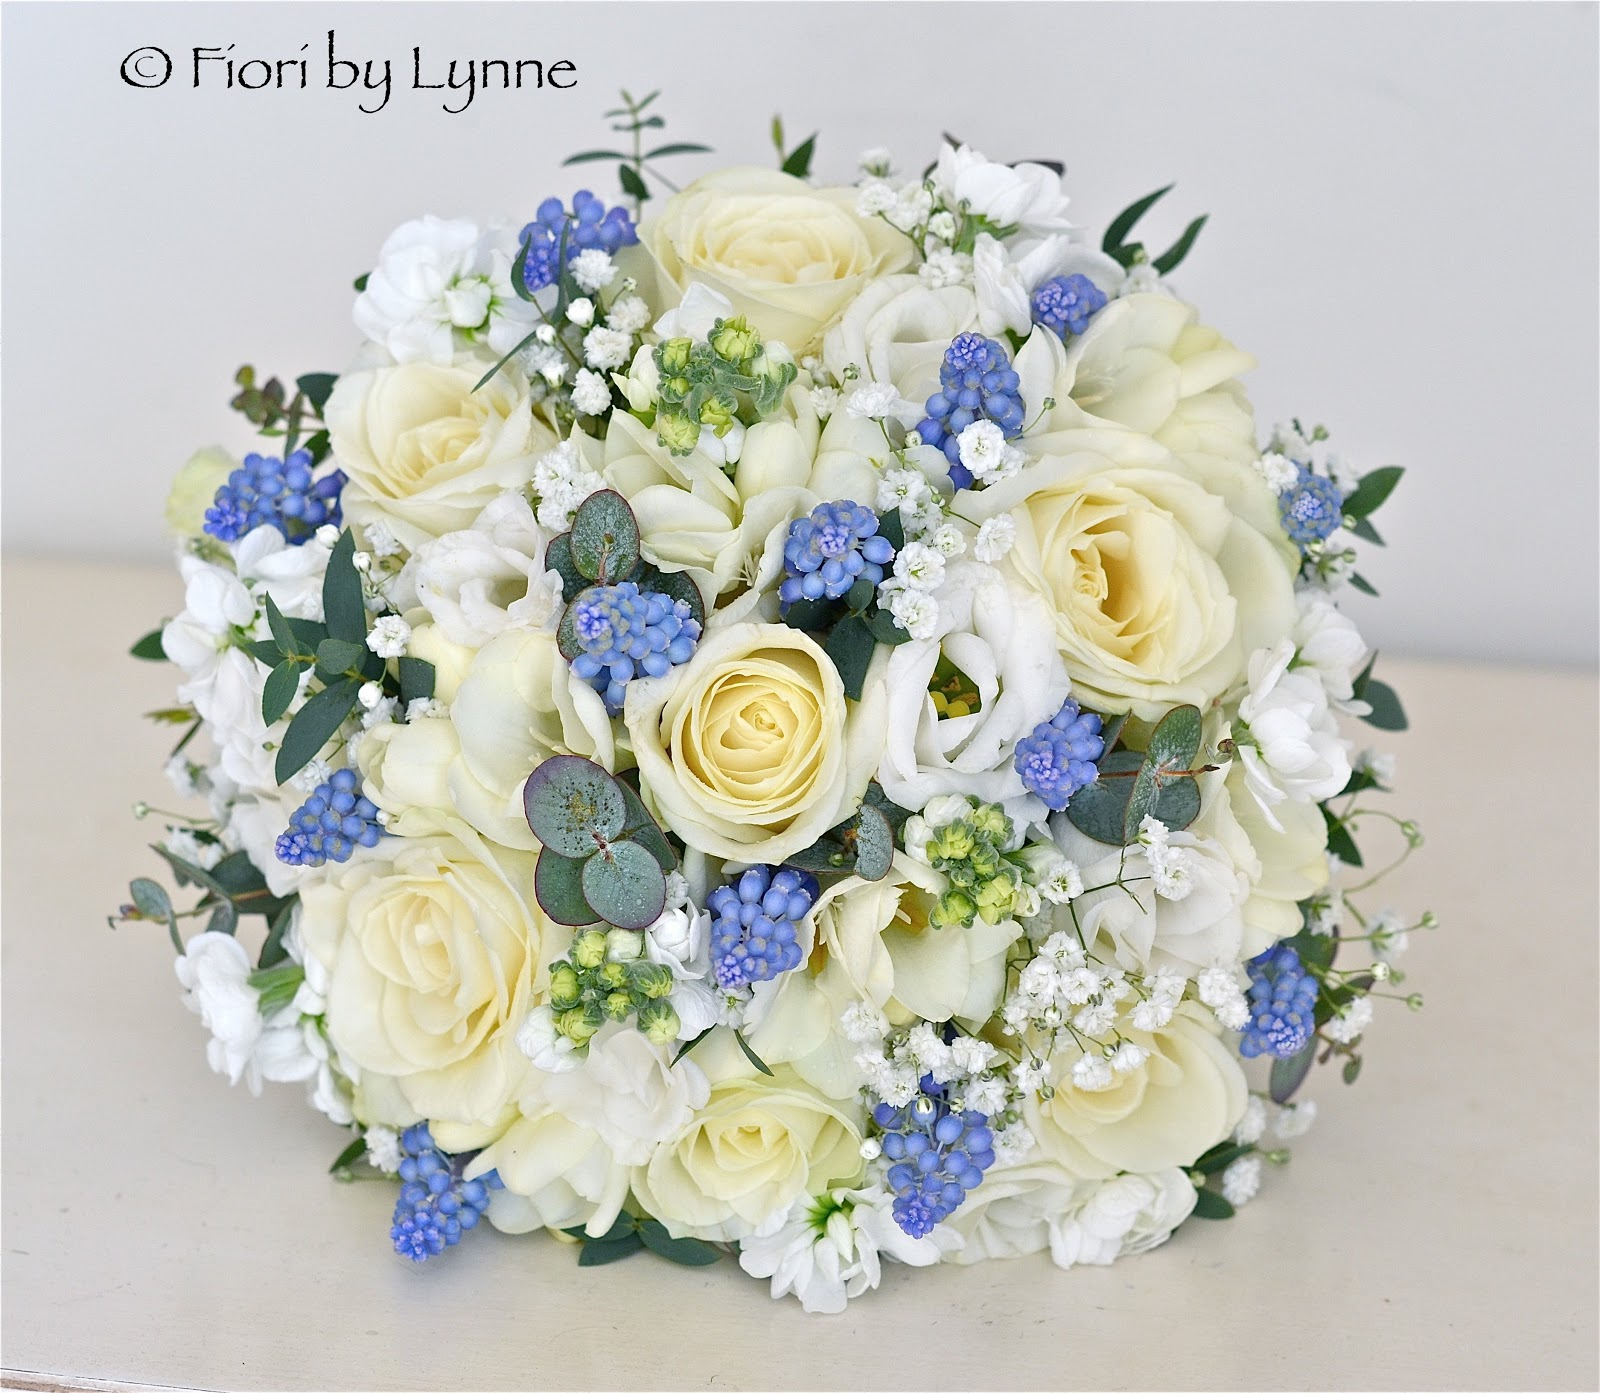 Wedding flowers blog carmens blue and white spring wedding flowers a very fresh and pretty wedding in blues and whites with flowers in the natural country style the grape hyacinths add a lovely touch of wedgewood blue and izmirmasajfo